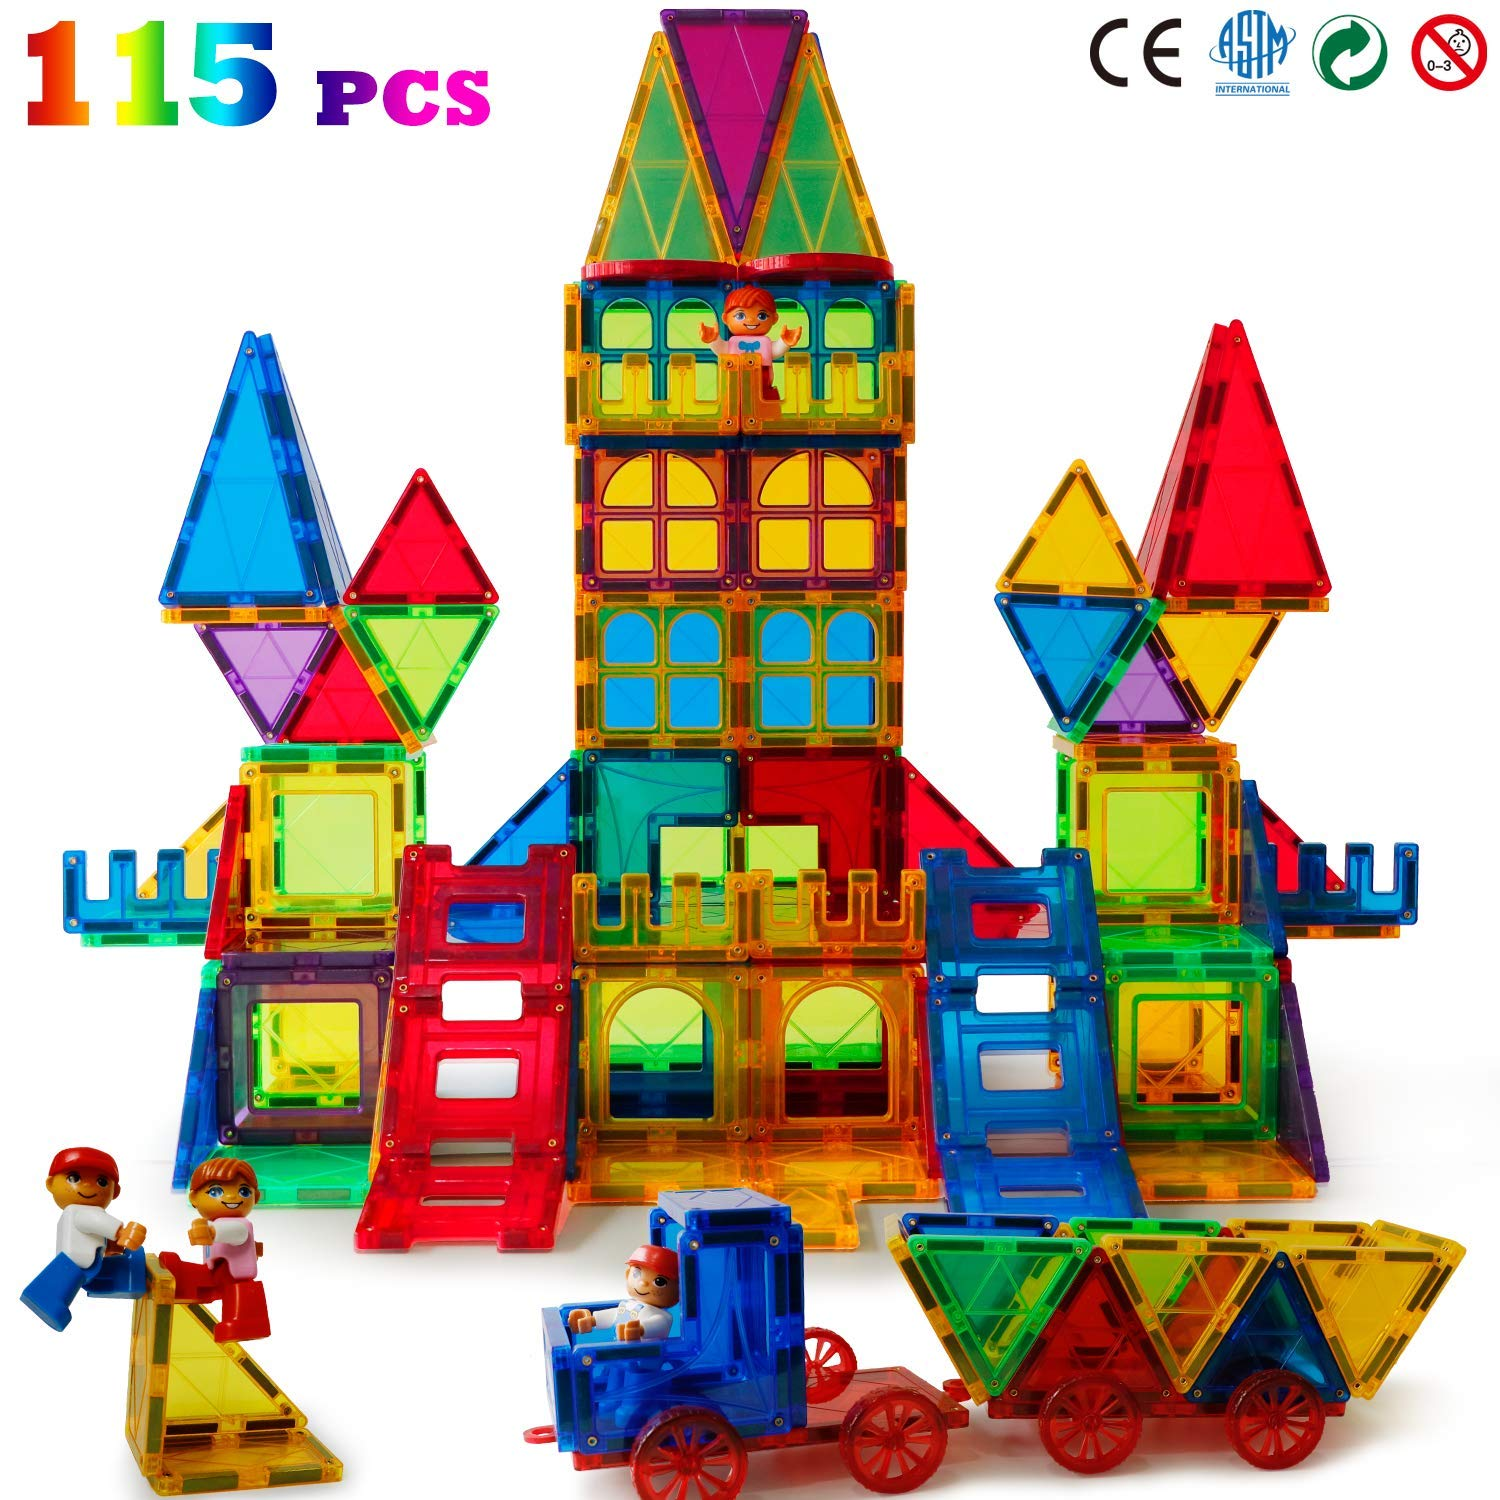 Magblock 115 PCS Magnetic Blocks, Magnetic Tiles Building Blocks for Kids Toy,Magnet Toys Set 3D Building Blocks for Toddler Boys and Girls